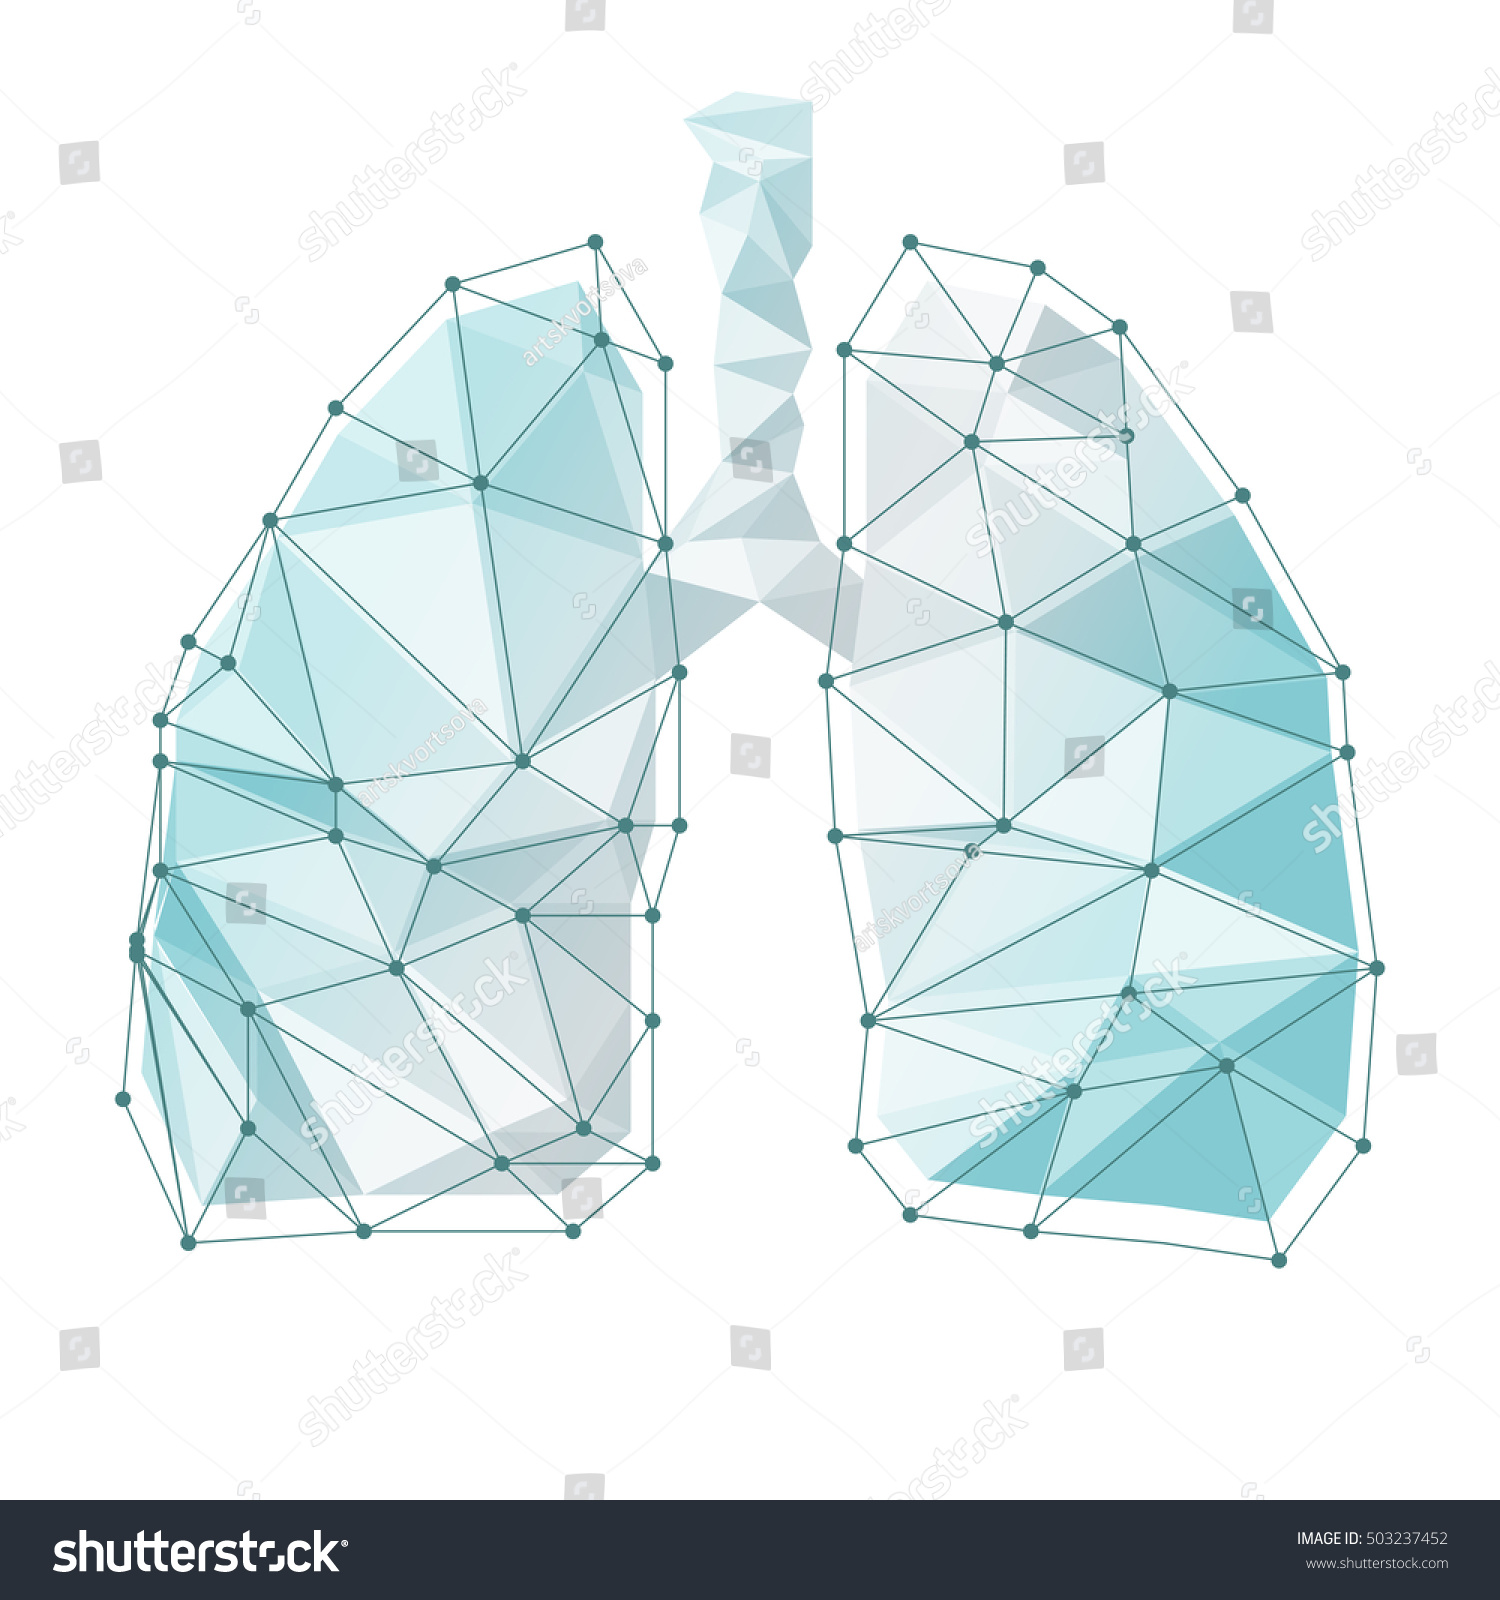 Stock Vector Lungs Symbol Breathing Lunge Exercise Lung Cancer Asthma Tuberculosis Pneumonia Respiratory